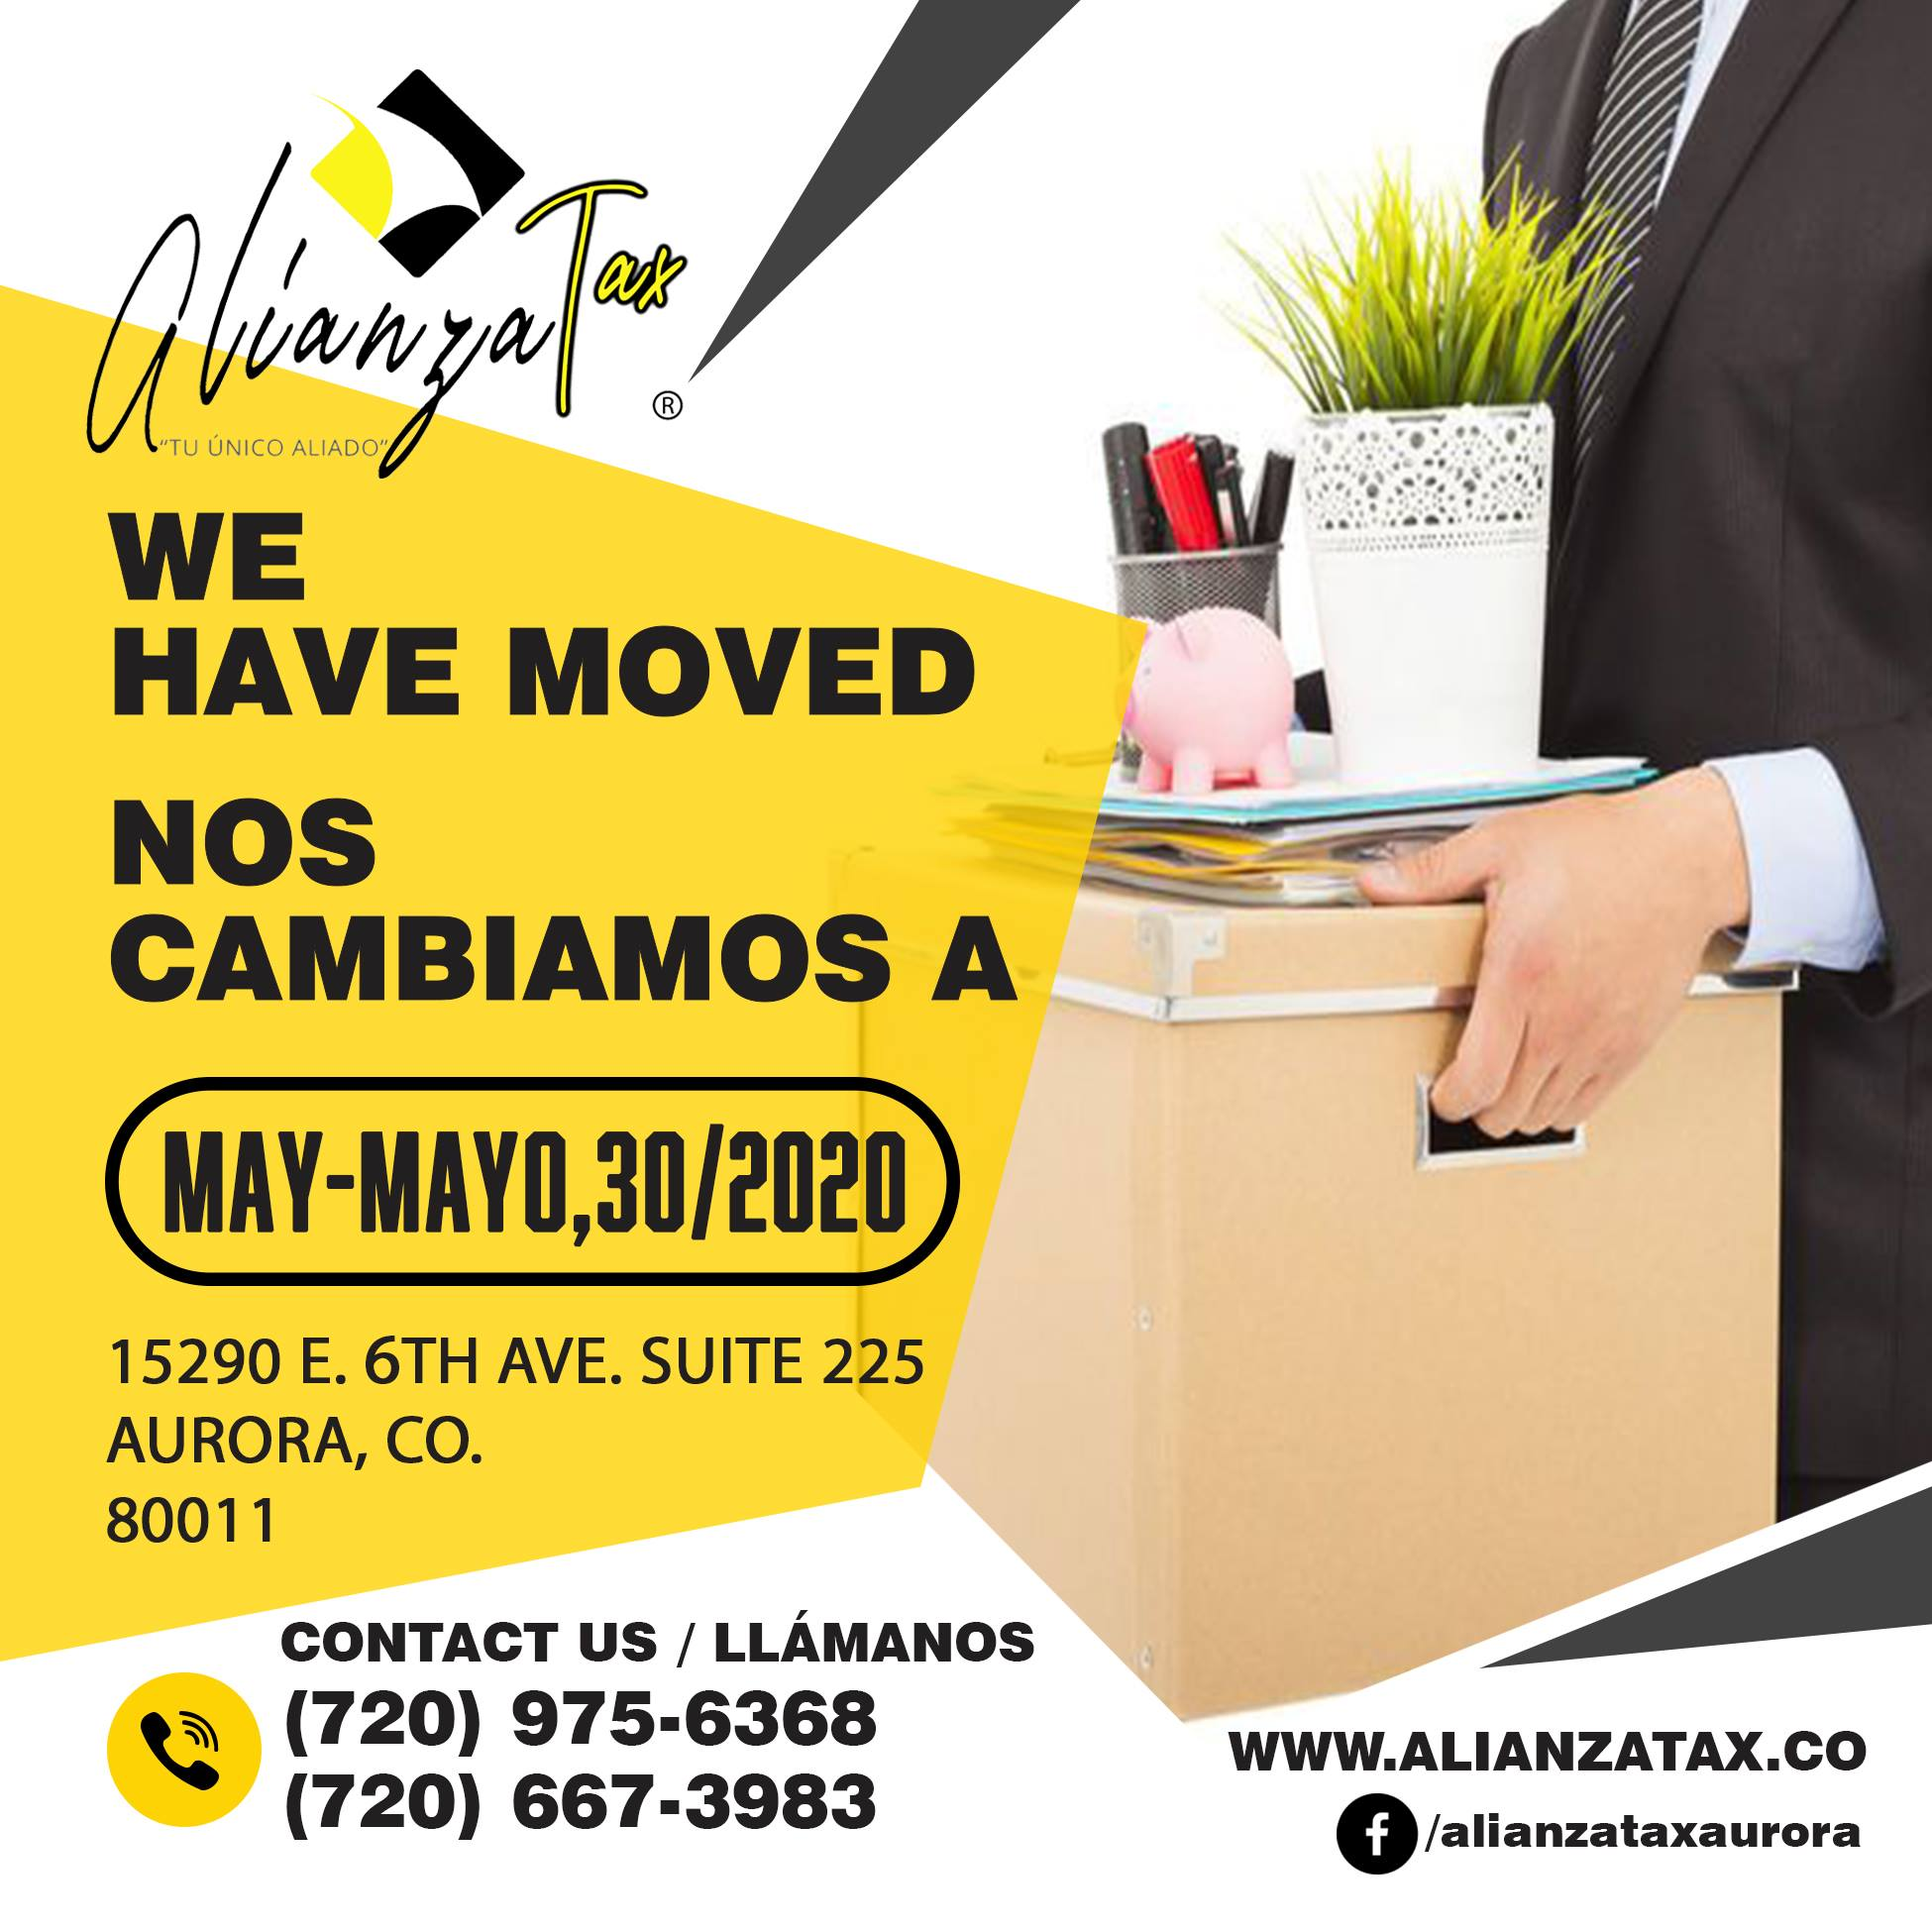 ALIANZA TAX WE HAVE MOVED